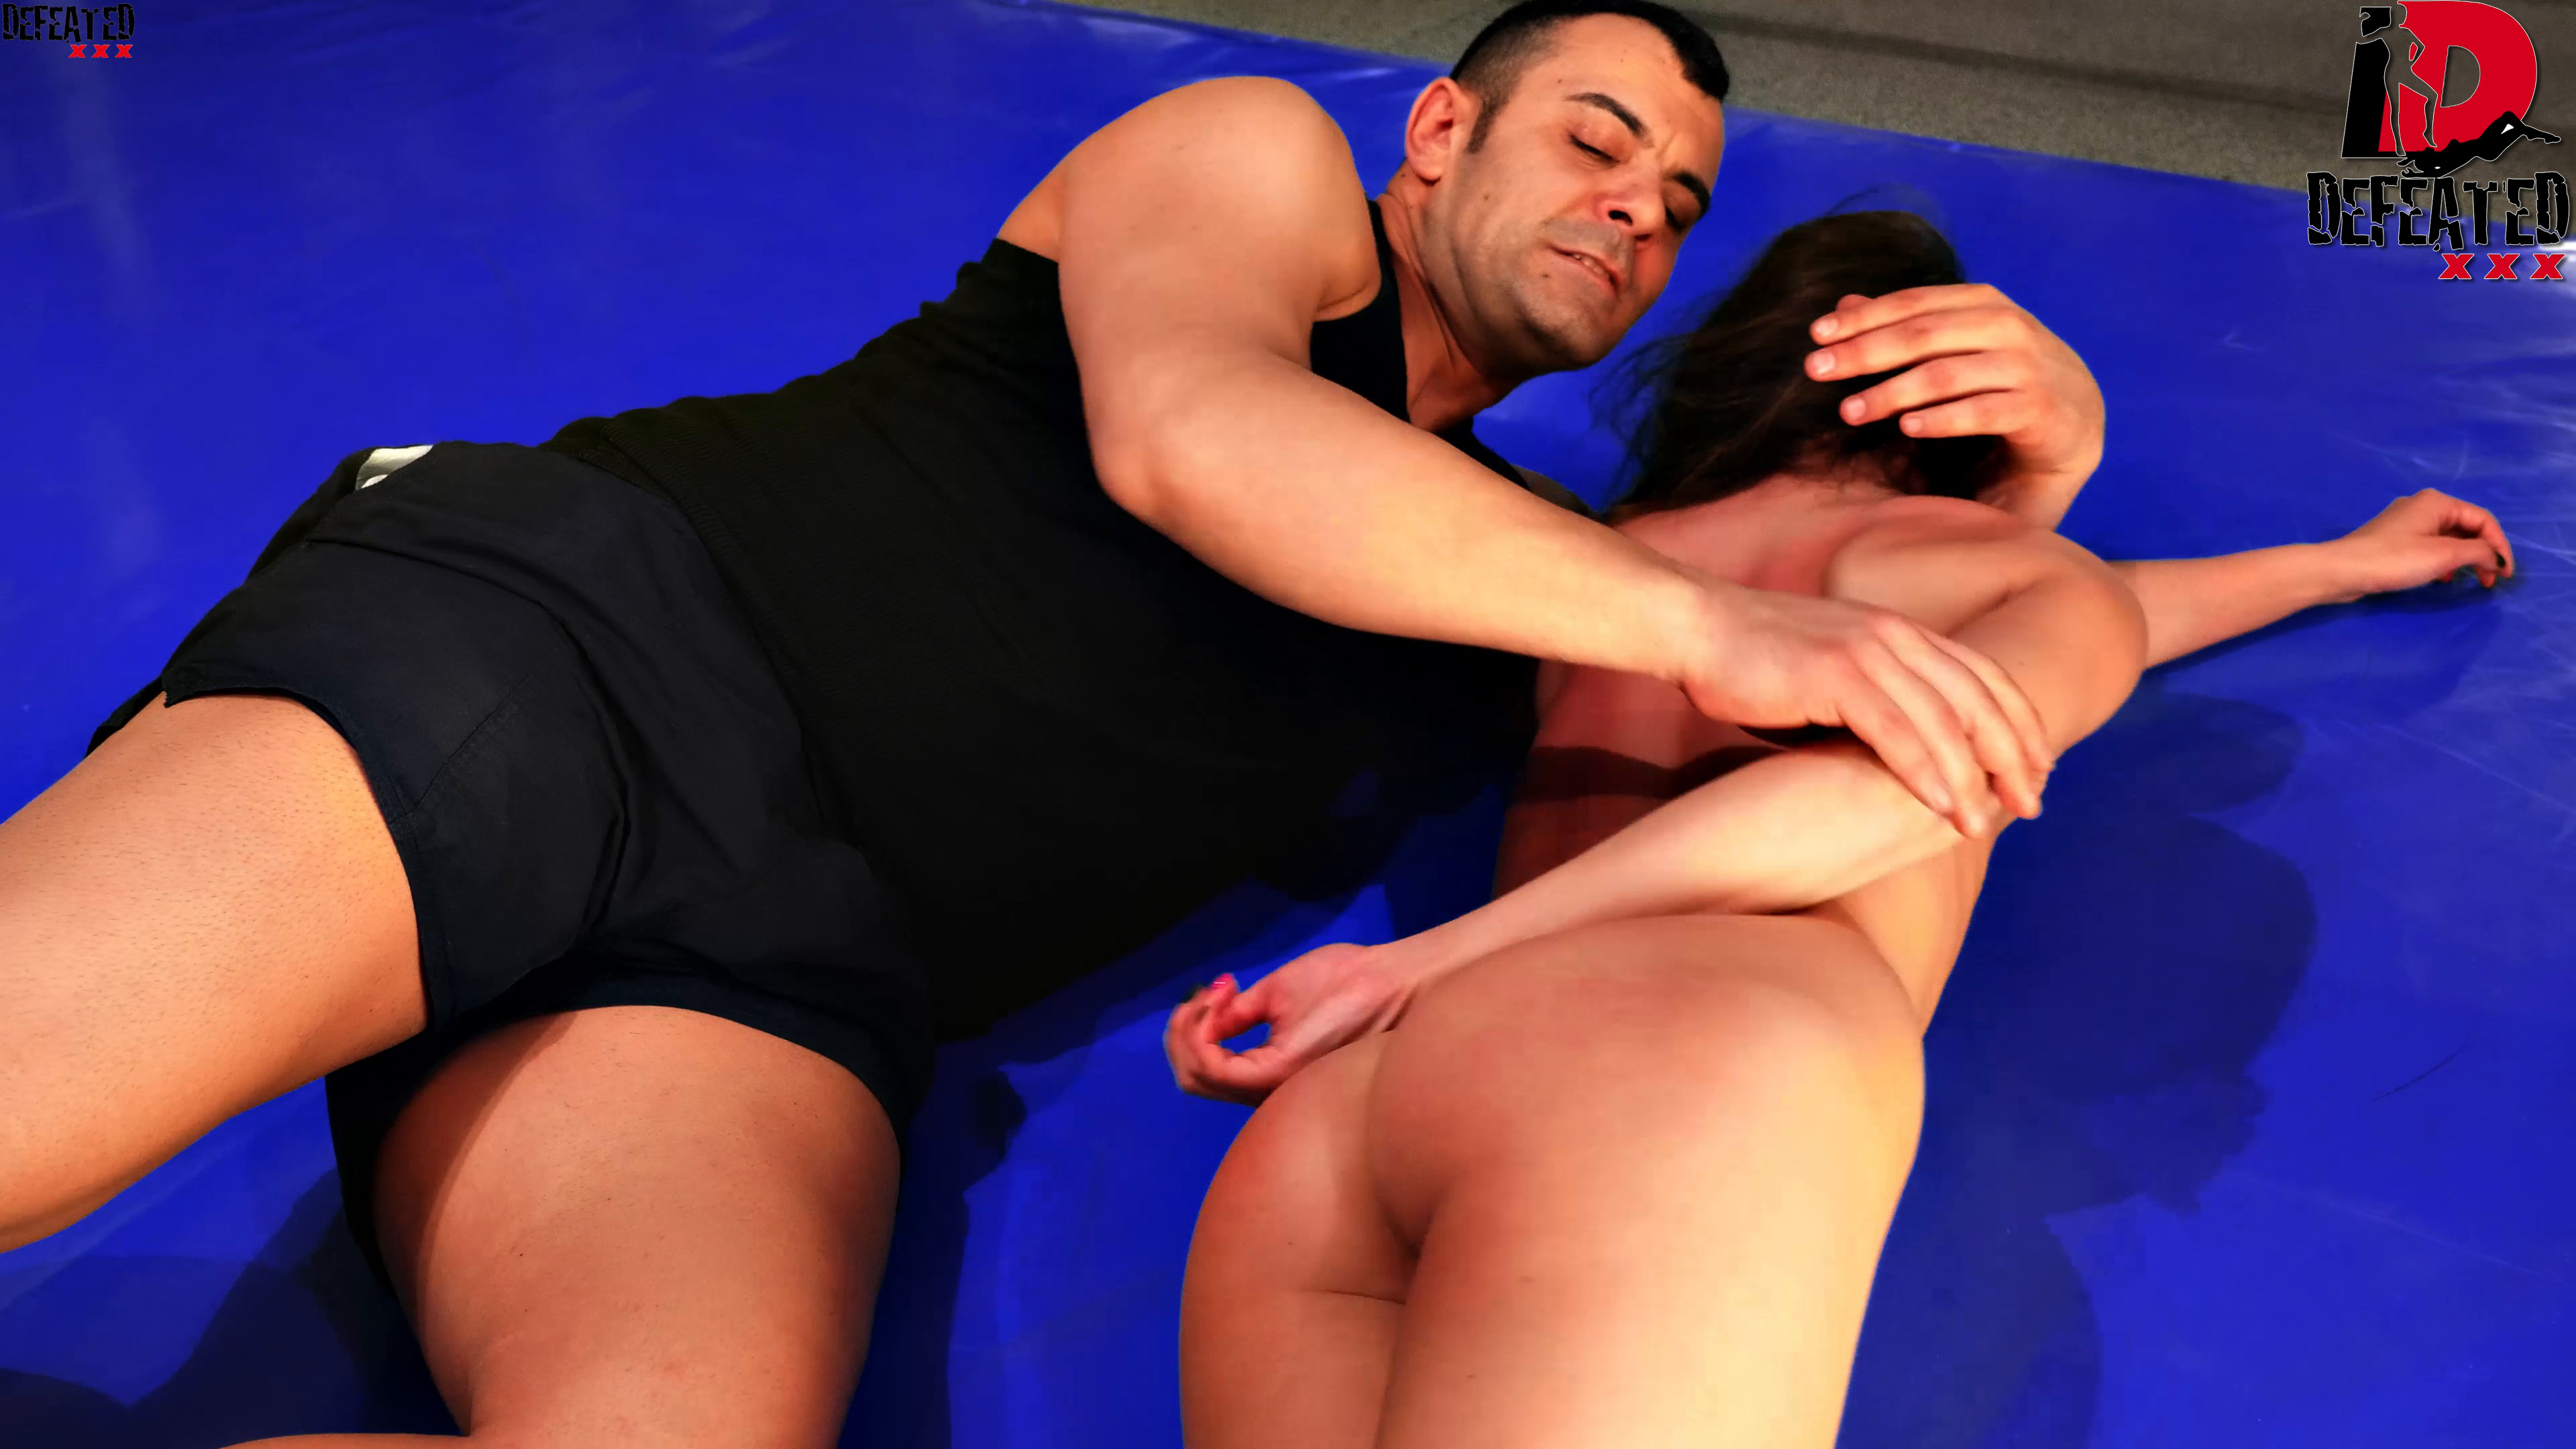 DEFEATED-MXD66---Amirah-Antonio-(127)